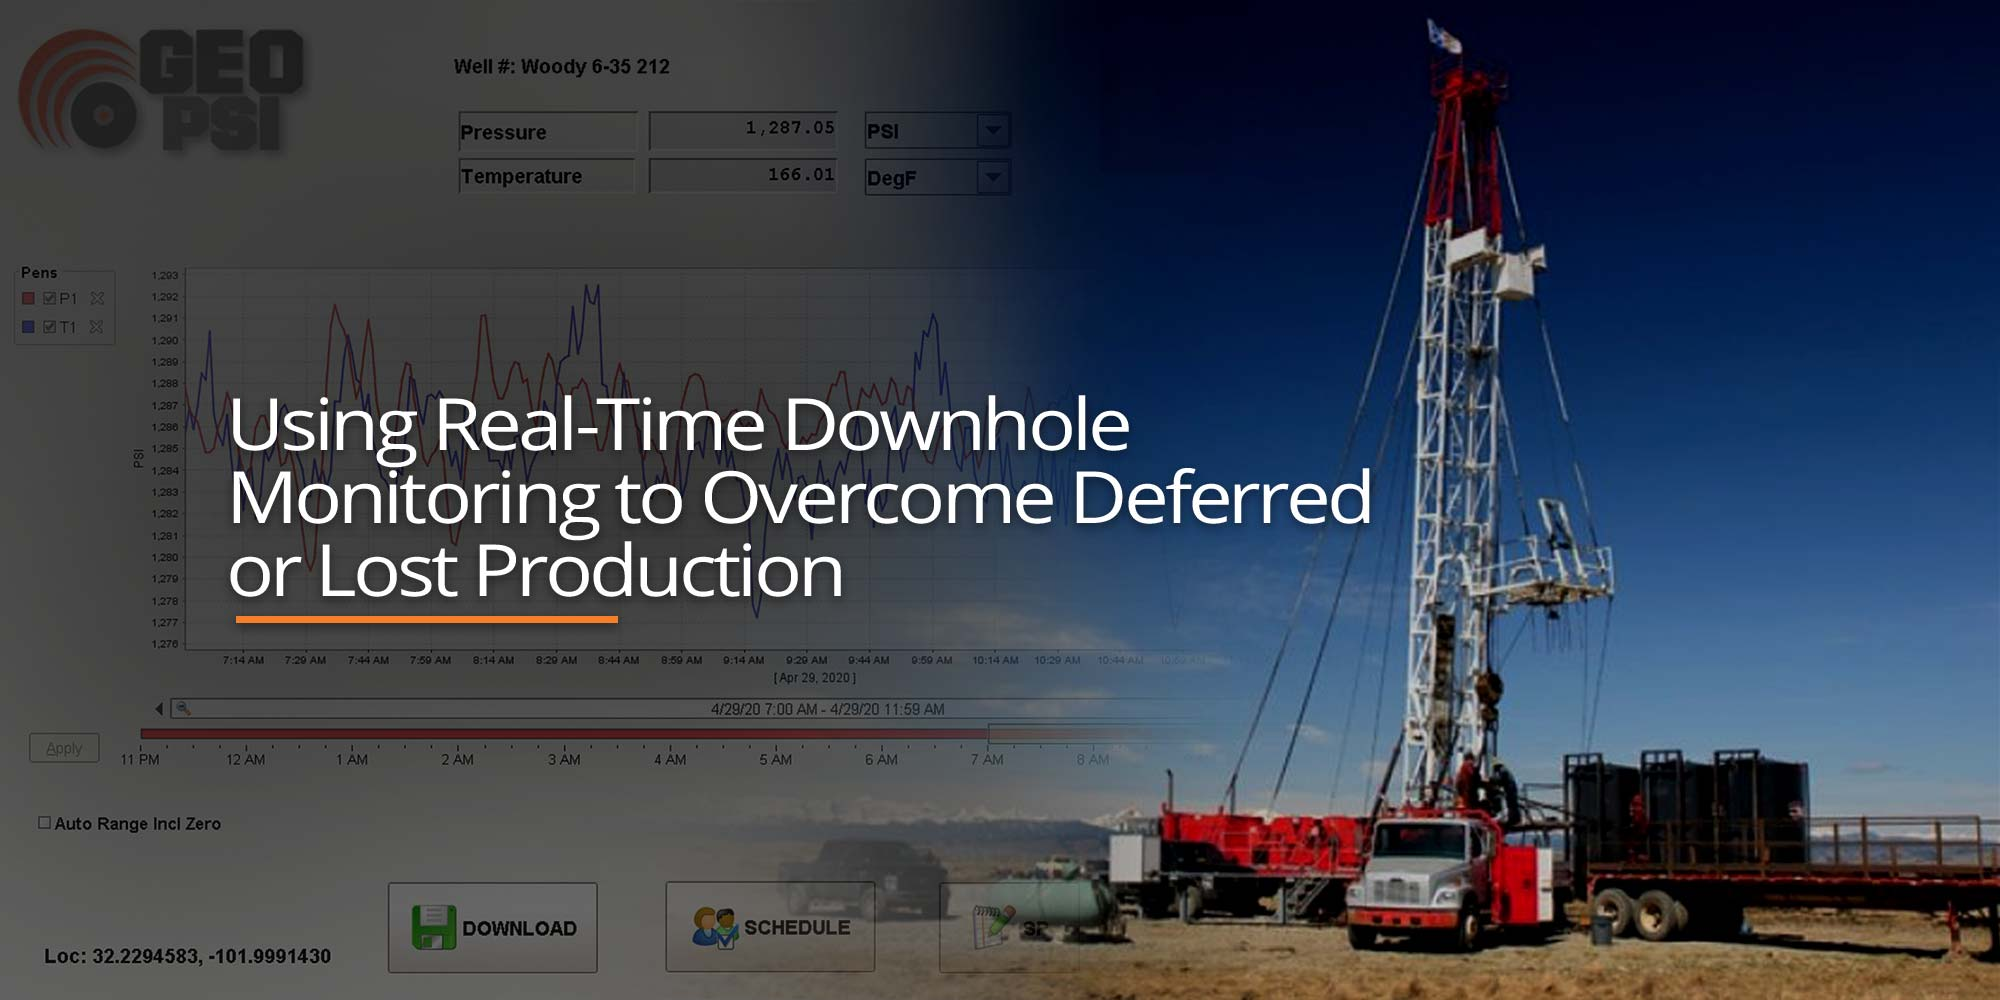 Using Real-Time Downhole Monitoring to Overcome Deferred or Lost Production